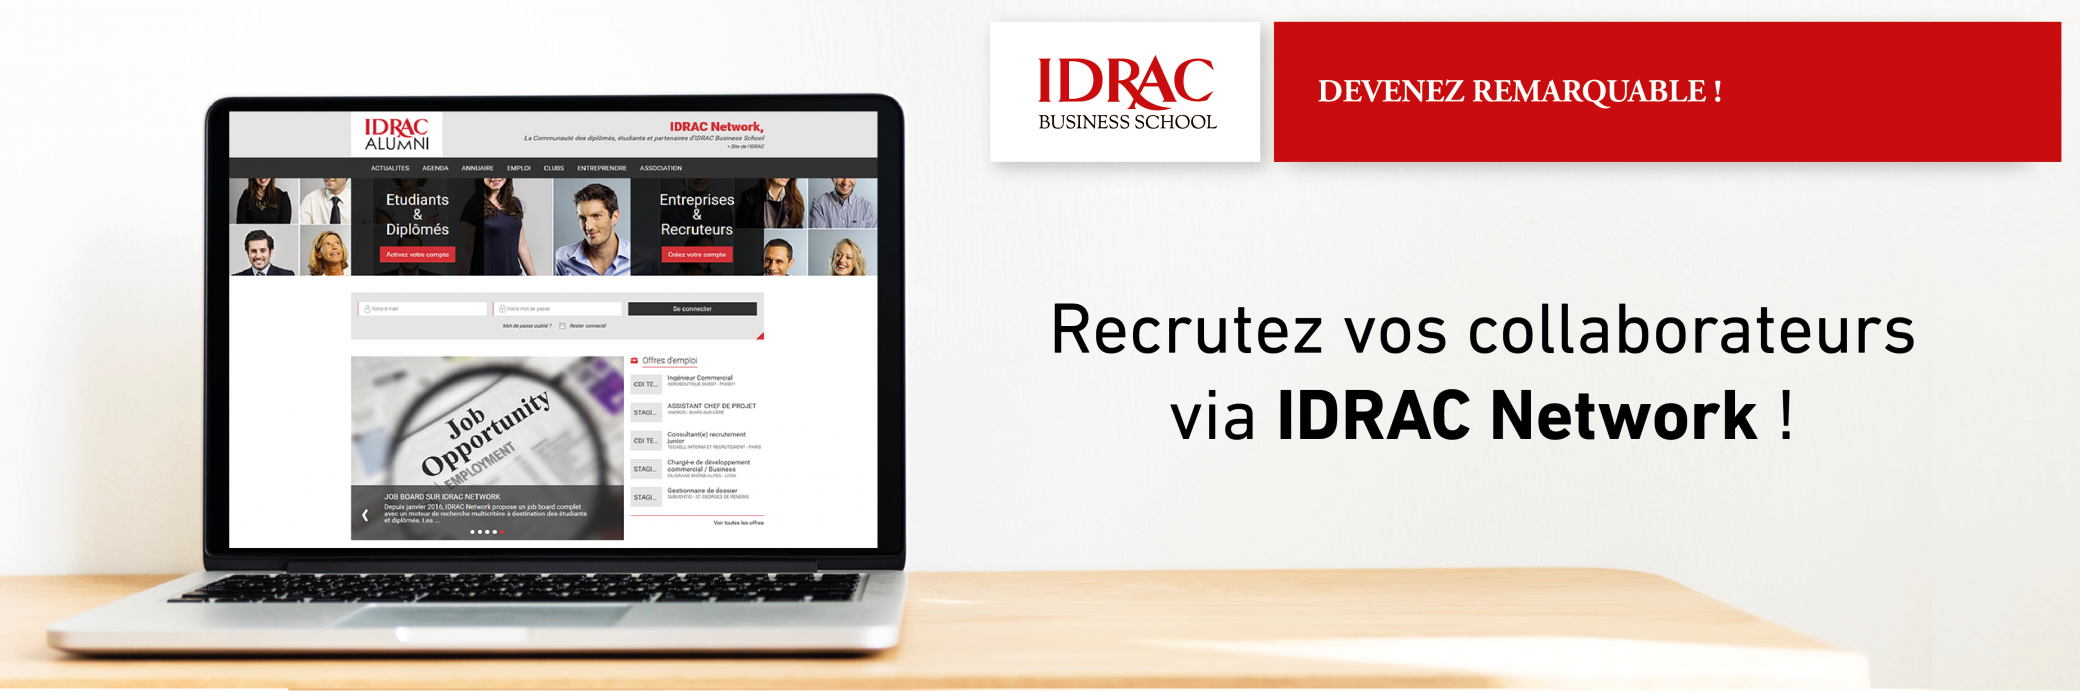 Recrutez vos collaborateurs sur IDRAC Network !